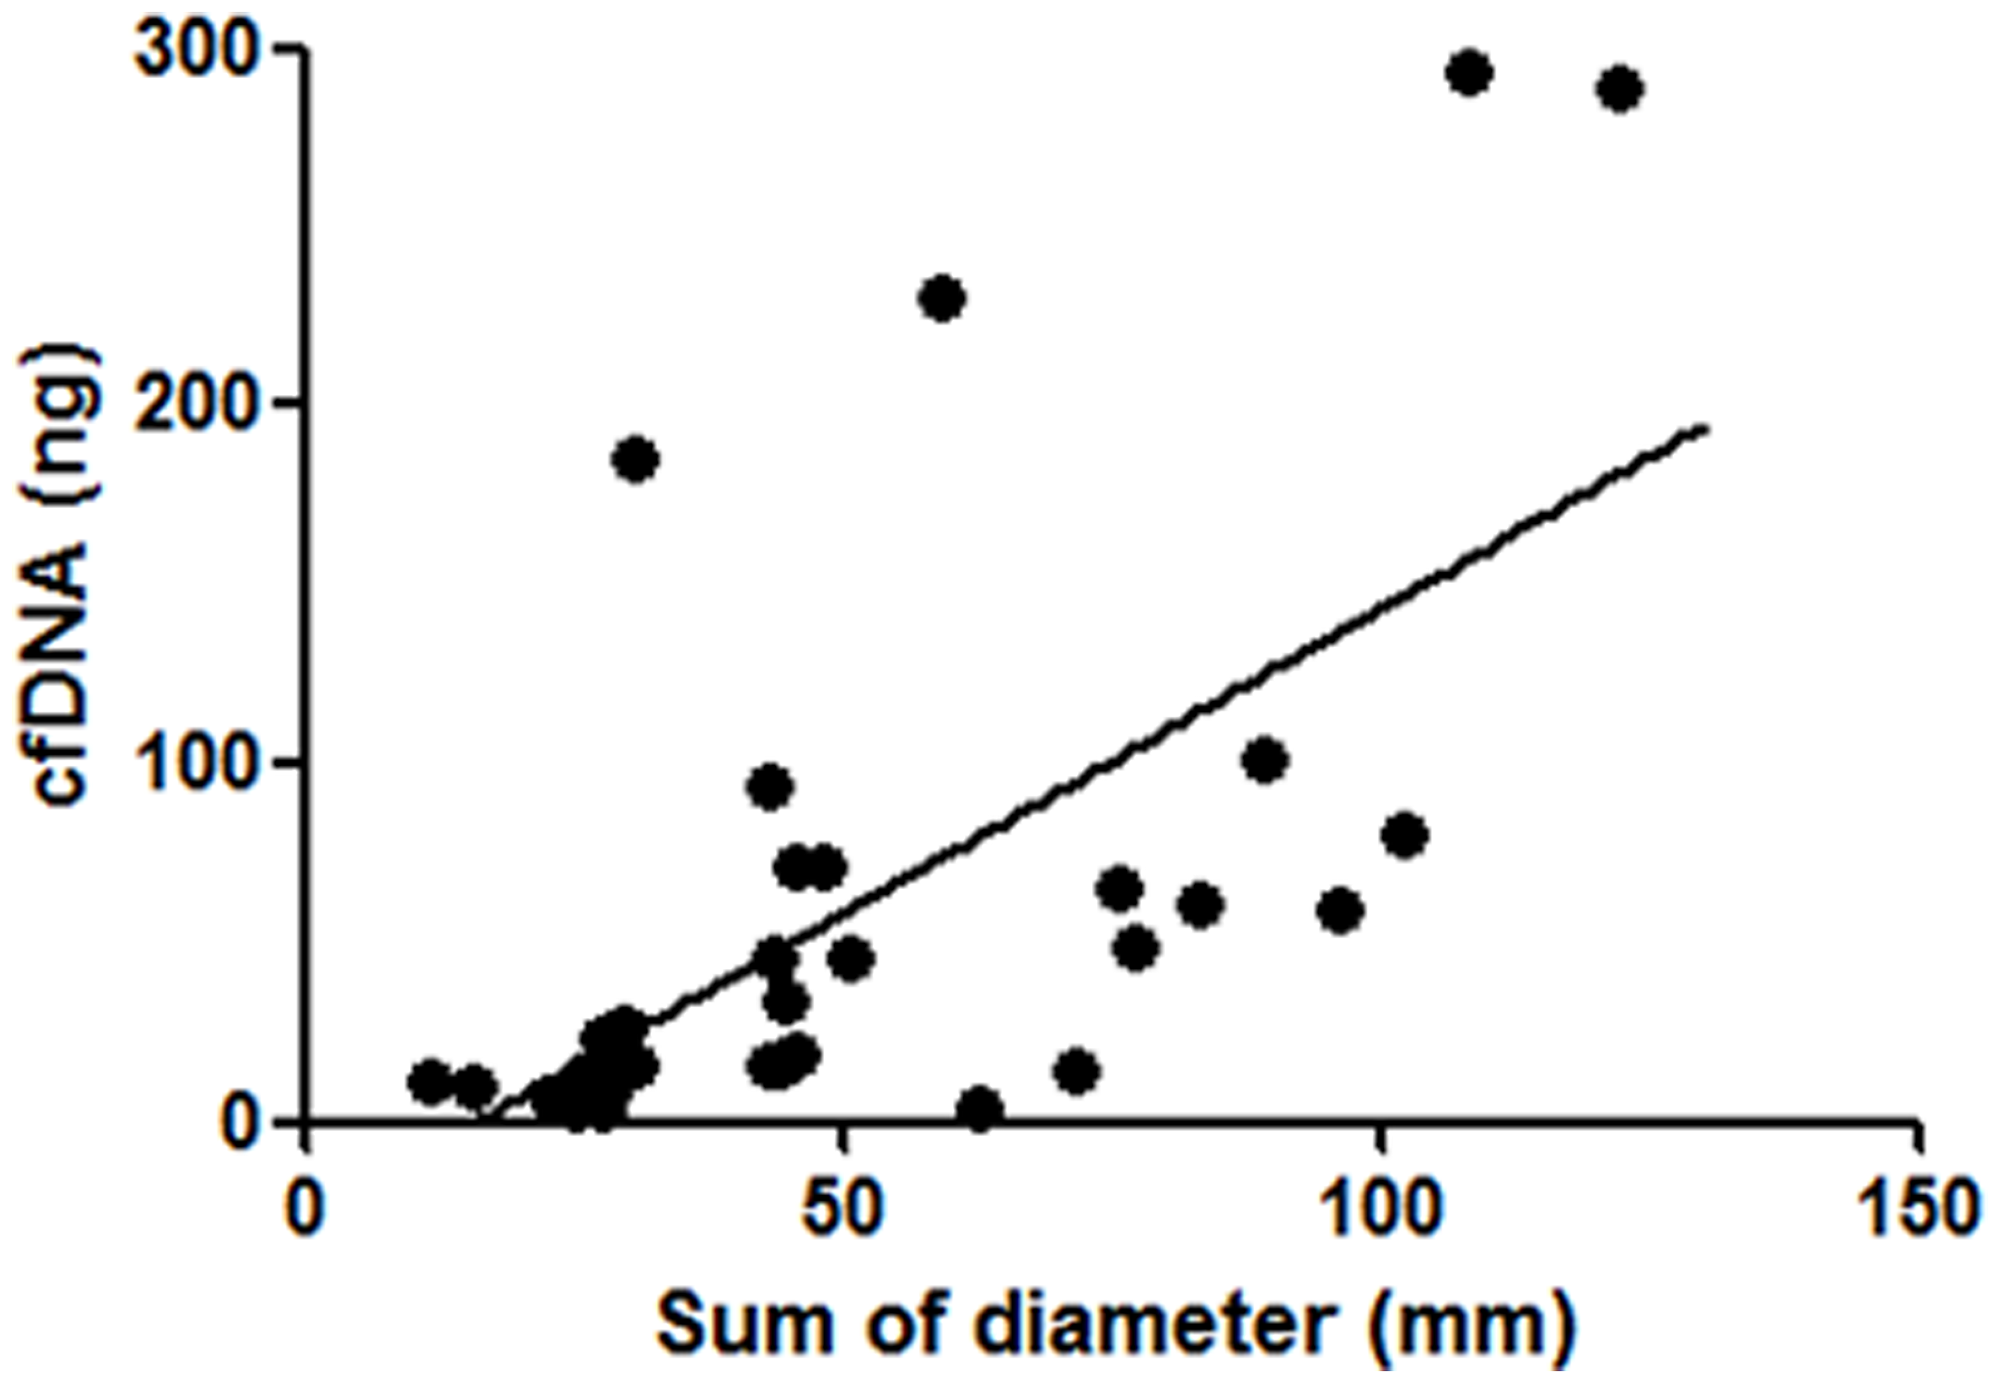 Correlation between isolated cfDNA amounts and the sum of diameters of target lesions.